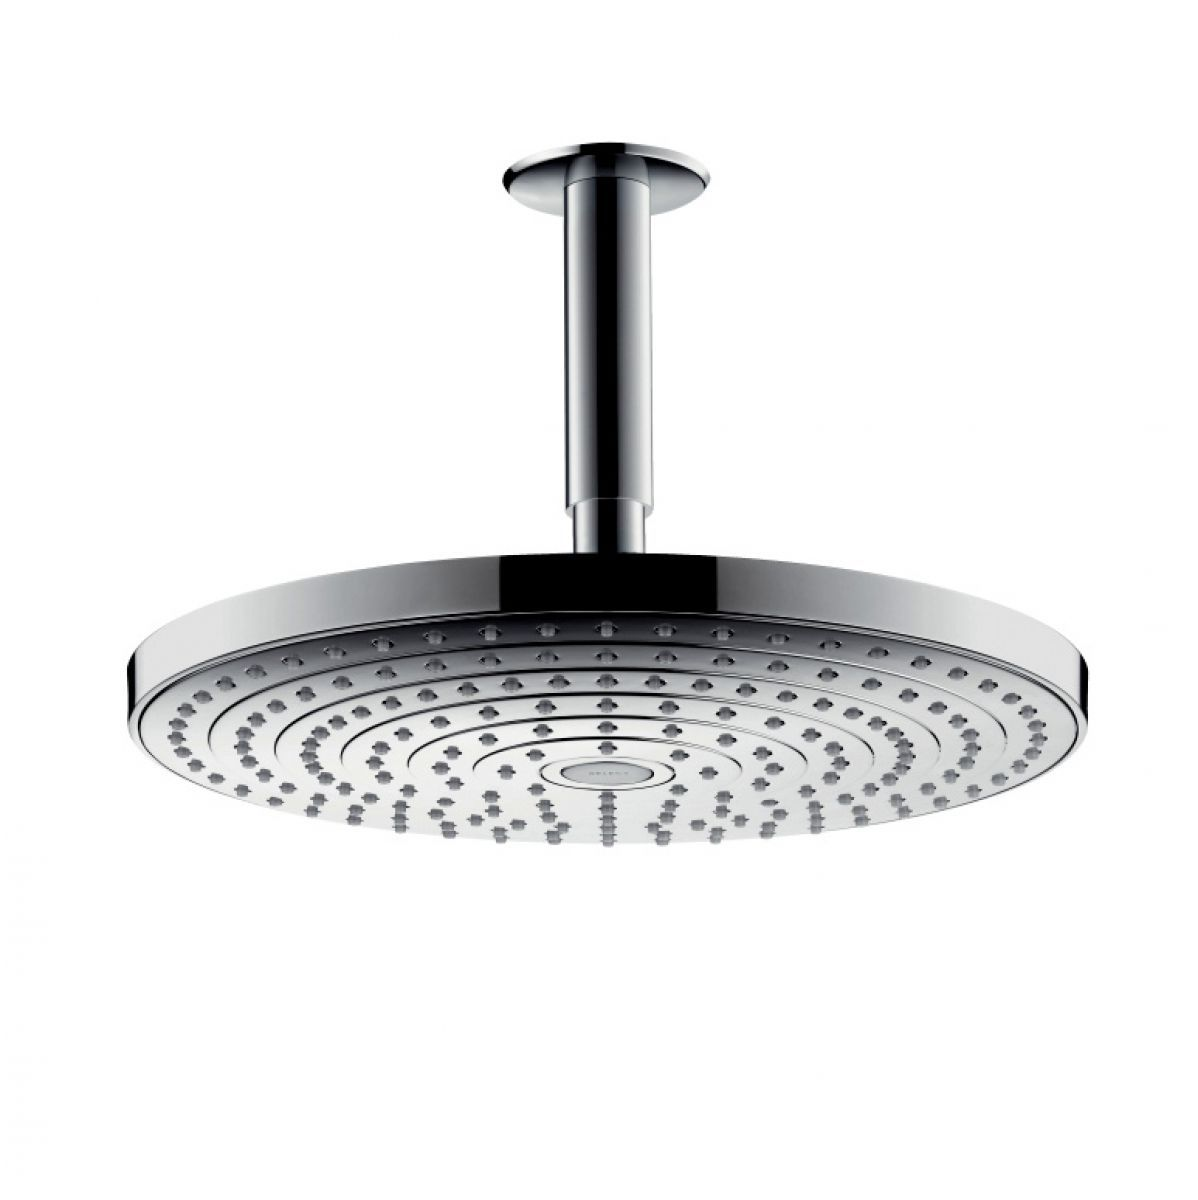 hansgrohe raindance select s 2jet overhead shower with ceiling connector uk bathrooms. Black Bedroom Furniture Sets. Home Design Ideas